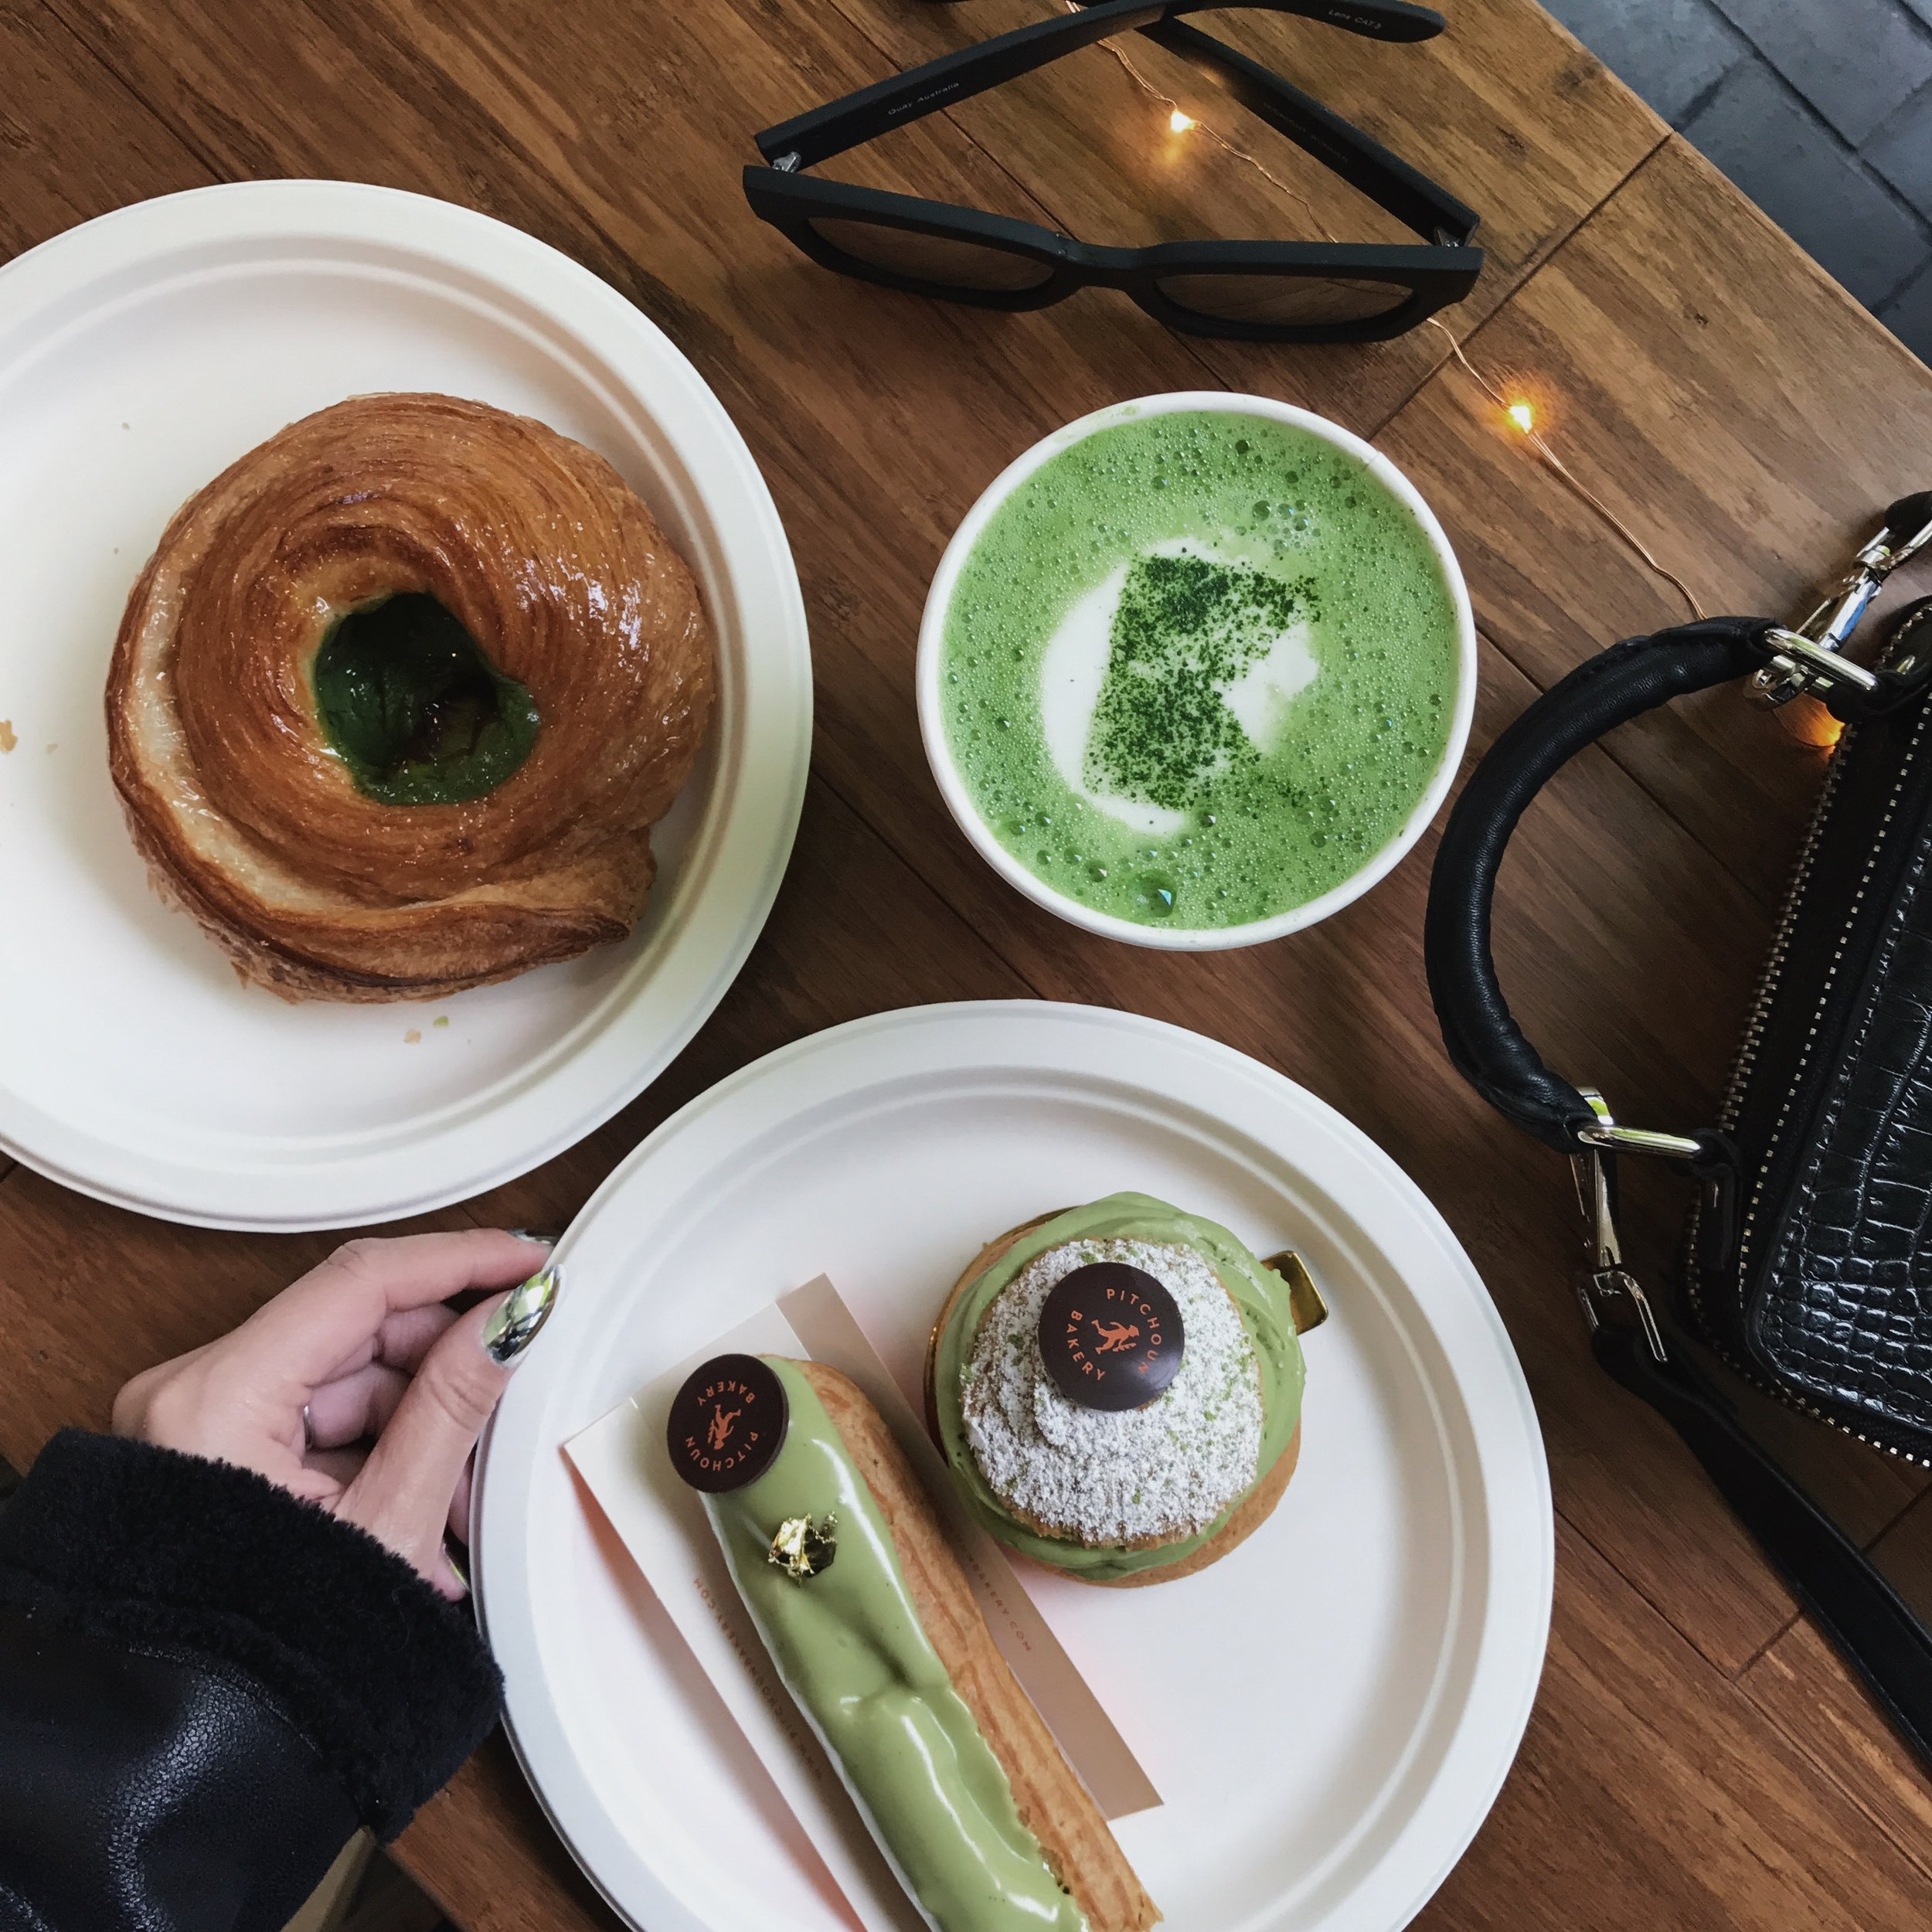 Matcha pastries exclusively for Midori Matcha by Pitchoun Bakery.